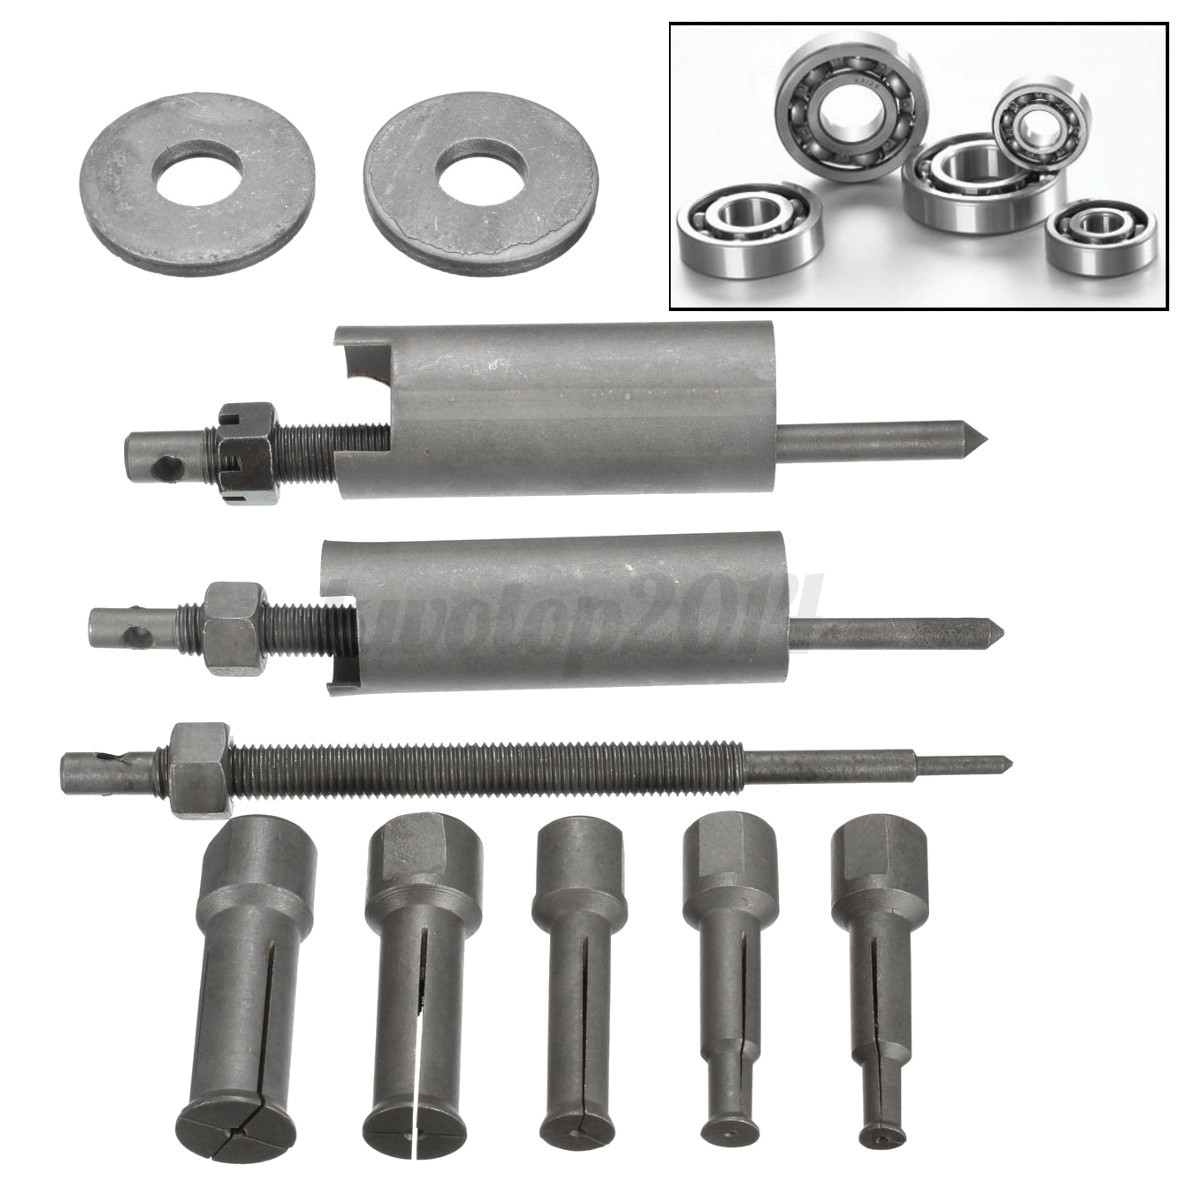 Bearing Puller Cad : Car auto motocycle inner remover kit mm demolition